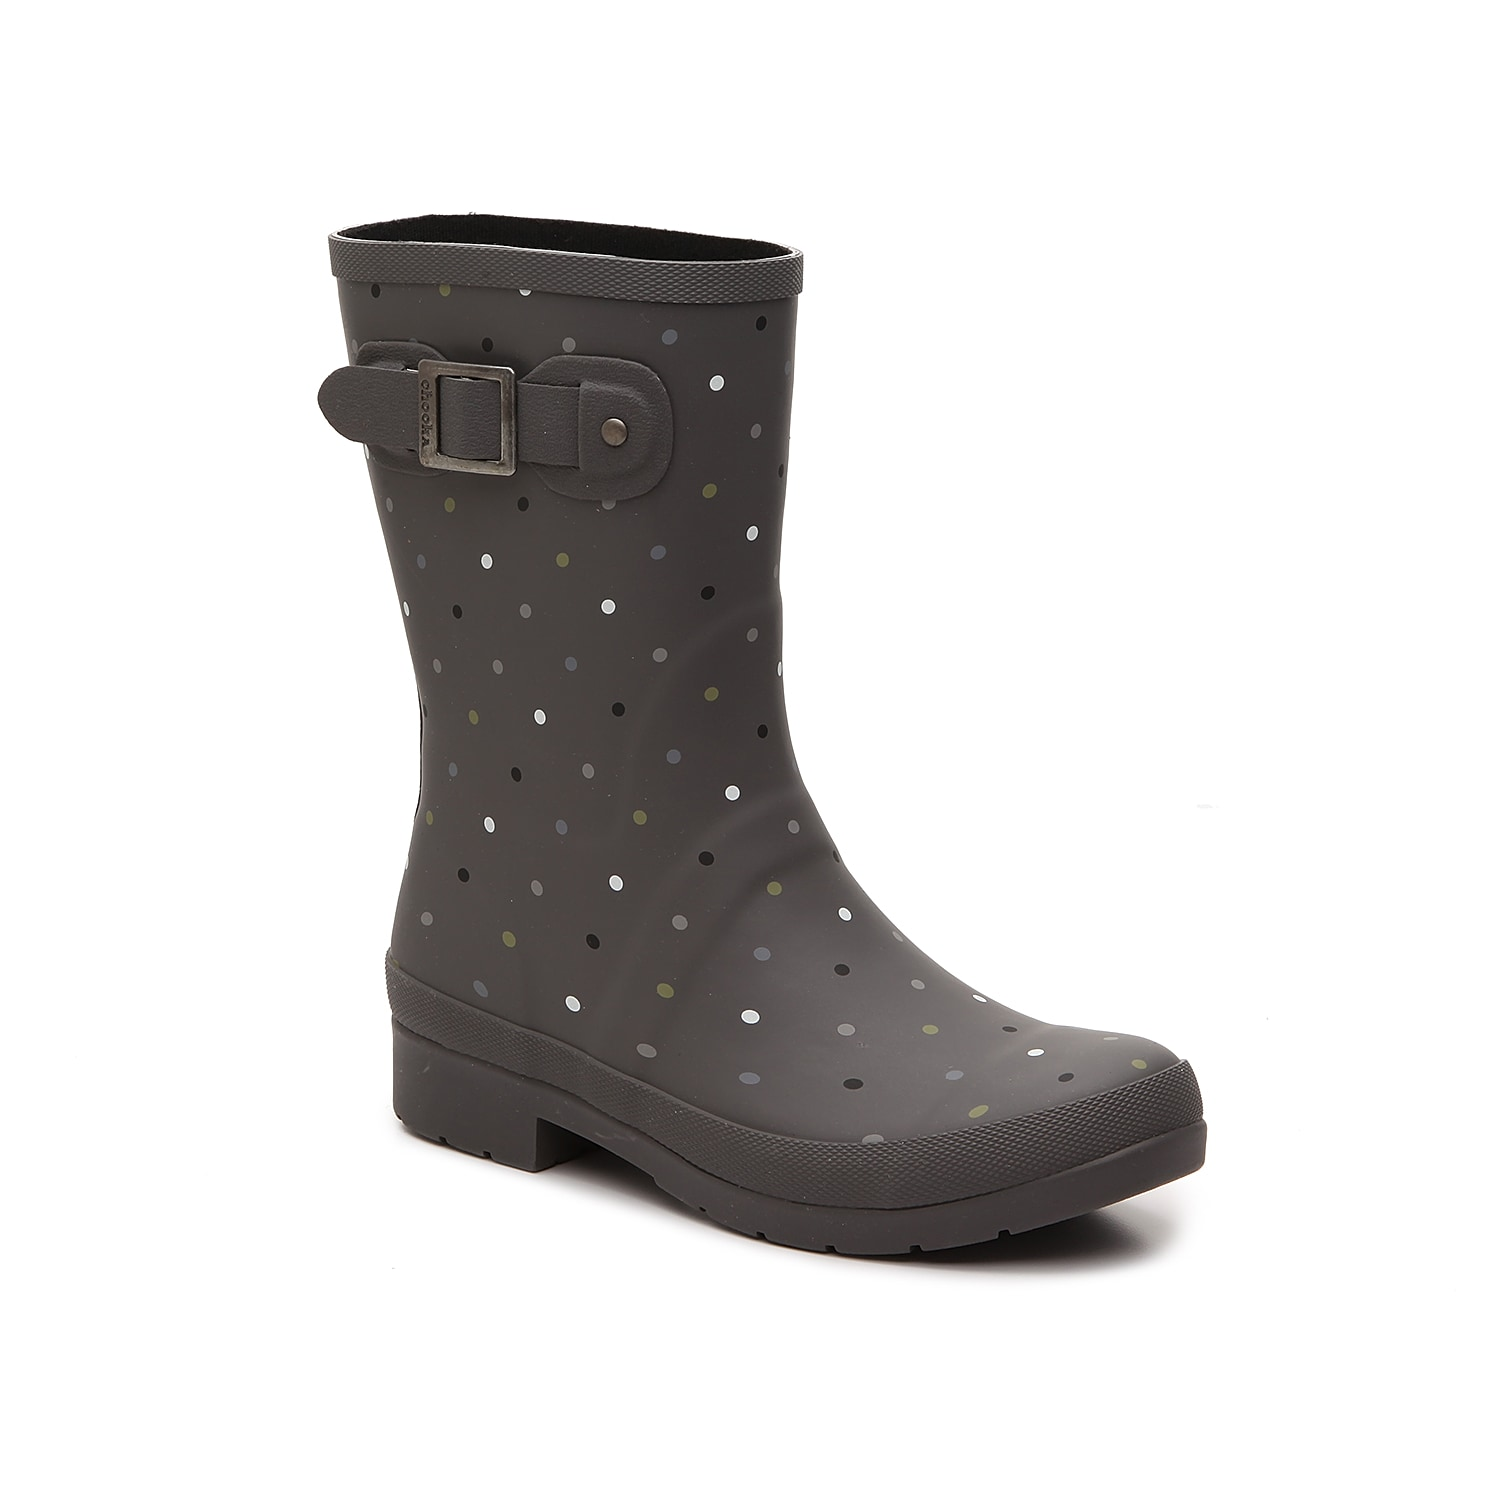 Enjoy jumping from puddle to puddle in the Downpour rain boot from Chooka. This iconic boot has allover multicolor polka dots and a decorative buckle strap to capture that classic rainy day look. Click here for Boot Measuring Guide.